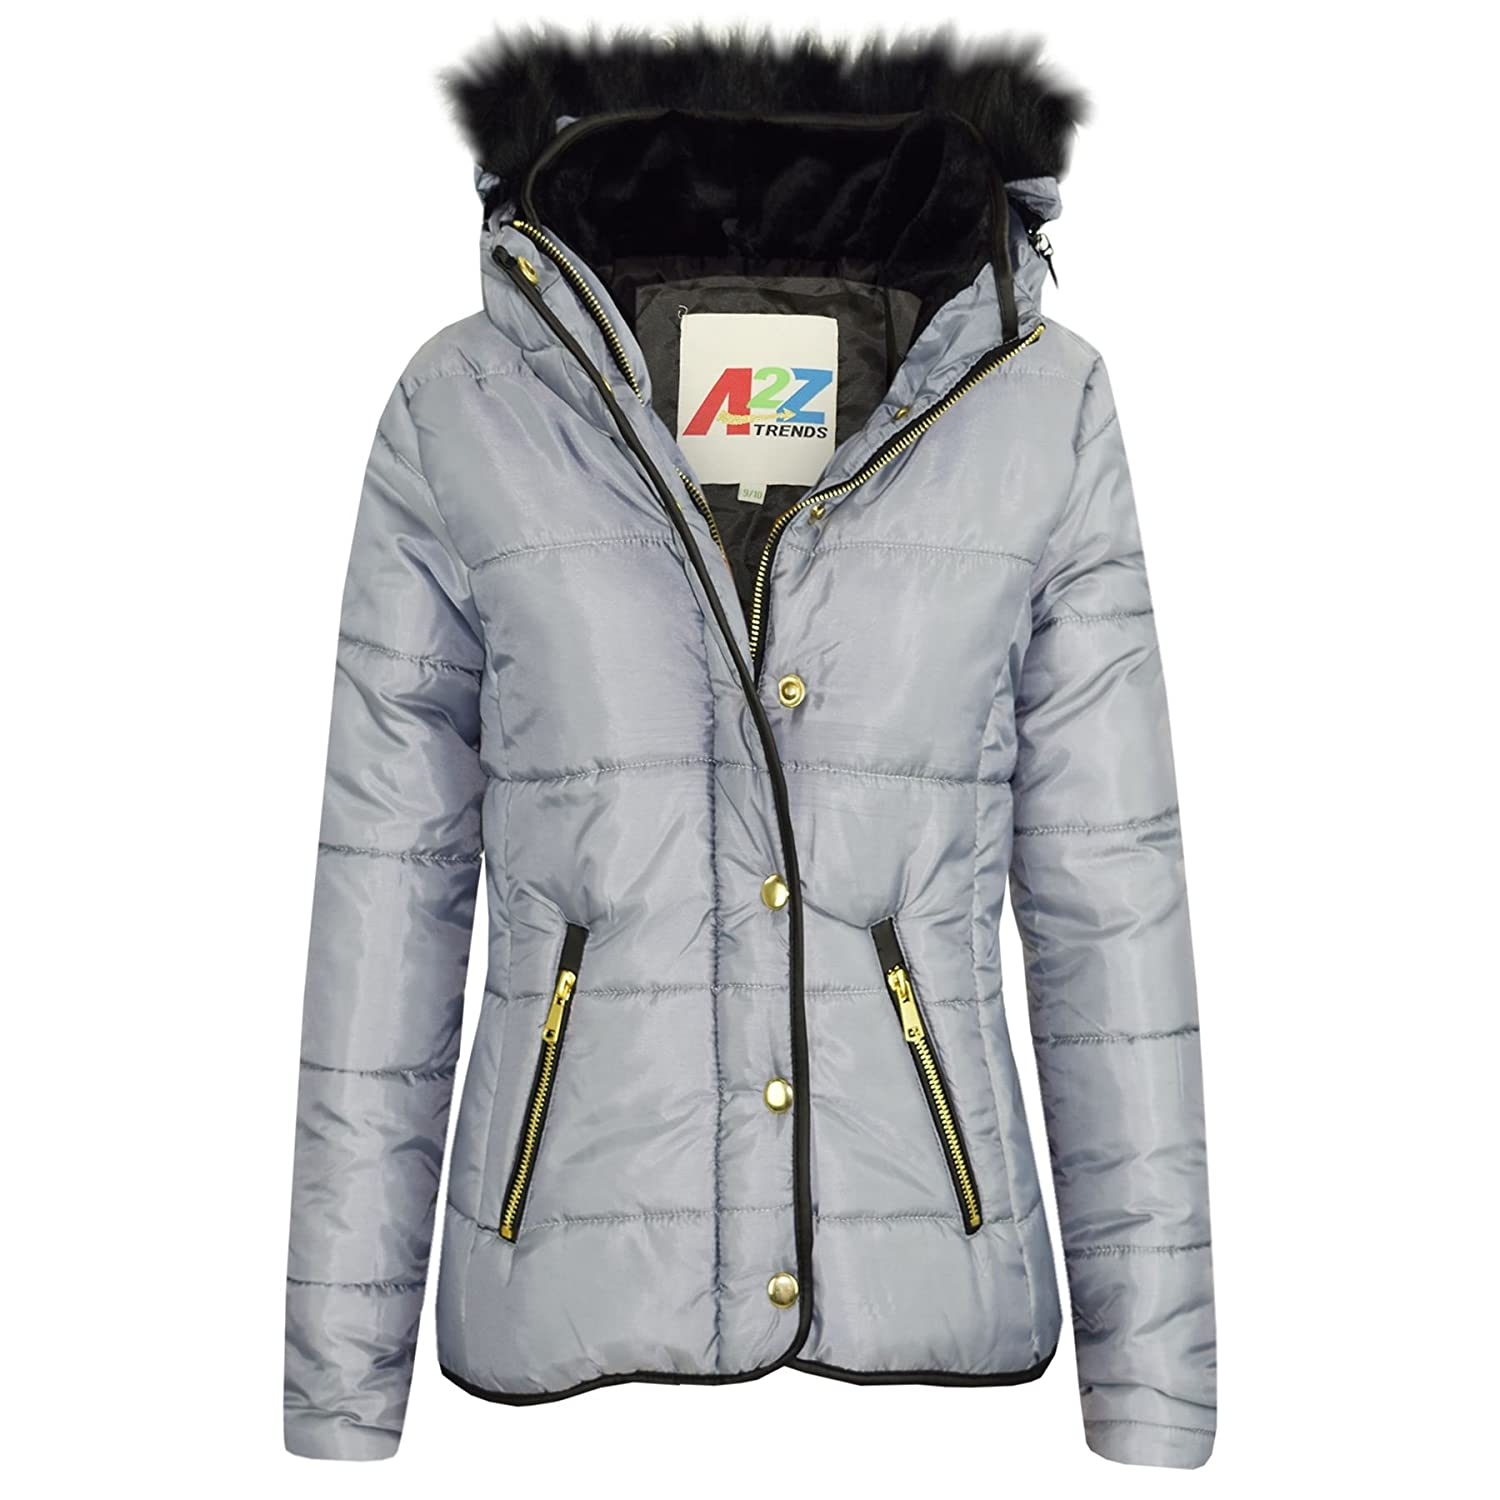 A2Z 4 Kids® Girls Jacket Kids Designer's Silver Padded Puffer Bubble Faux Fur Collar Quilted Warm Thick Coat Jackets Age 3 4 5 6 7 8 9 10 11 12 13 Years